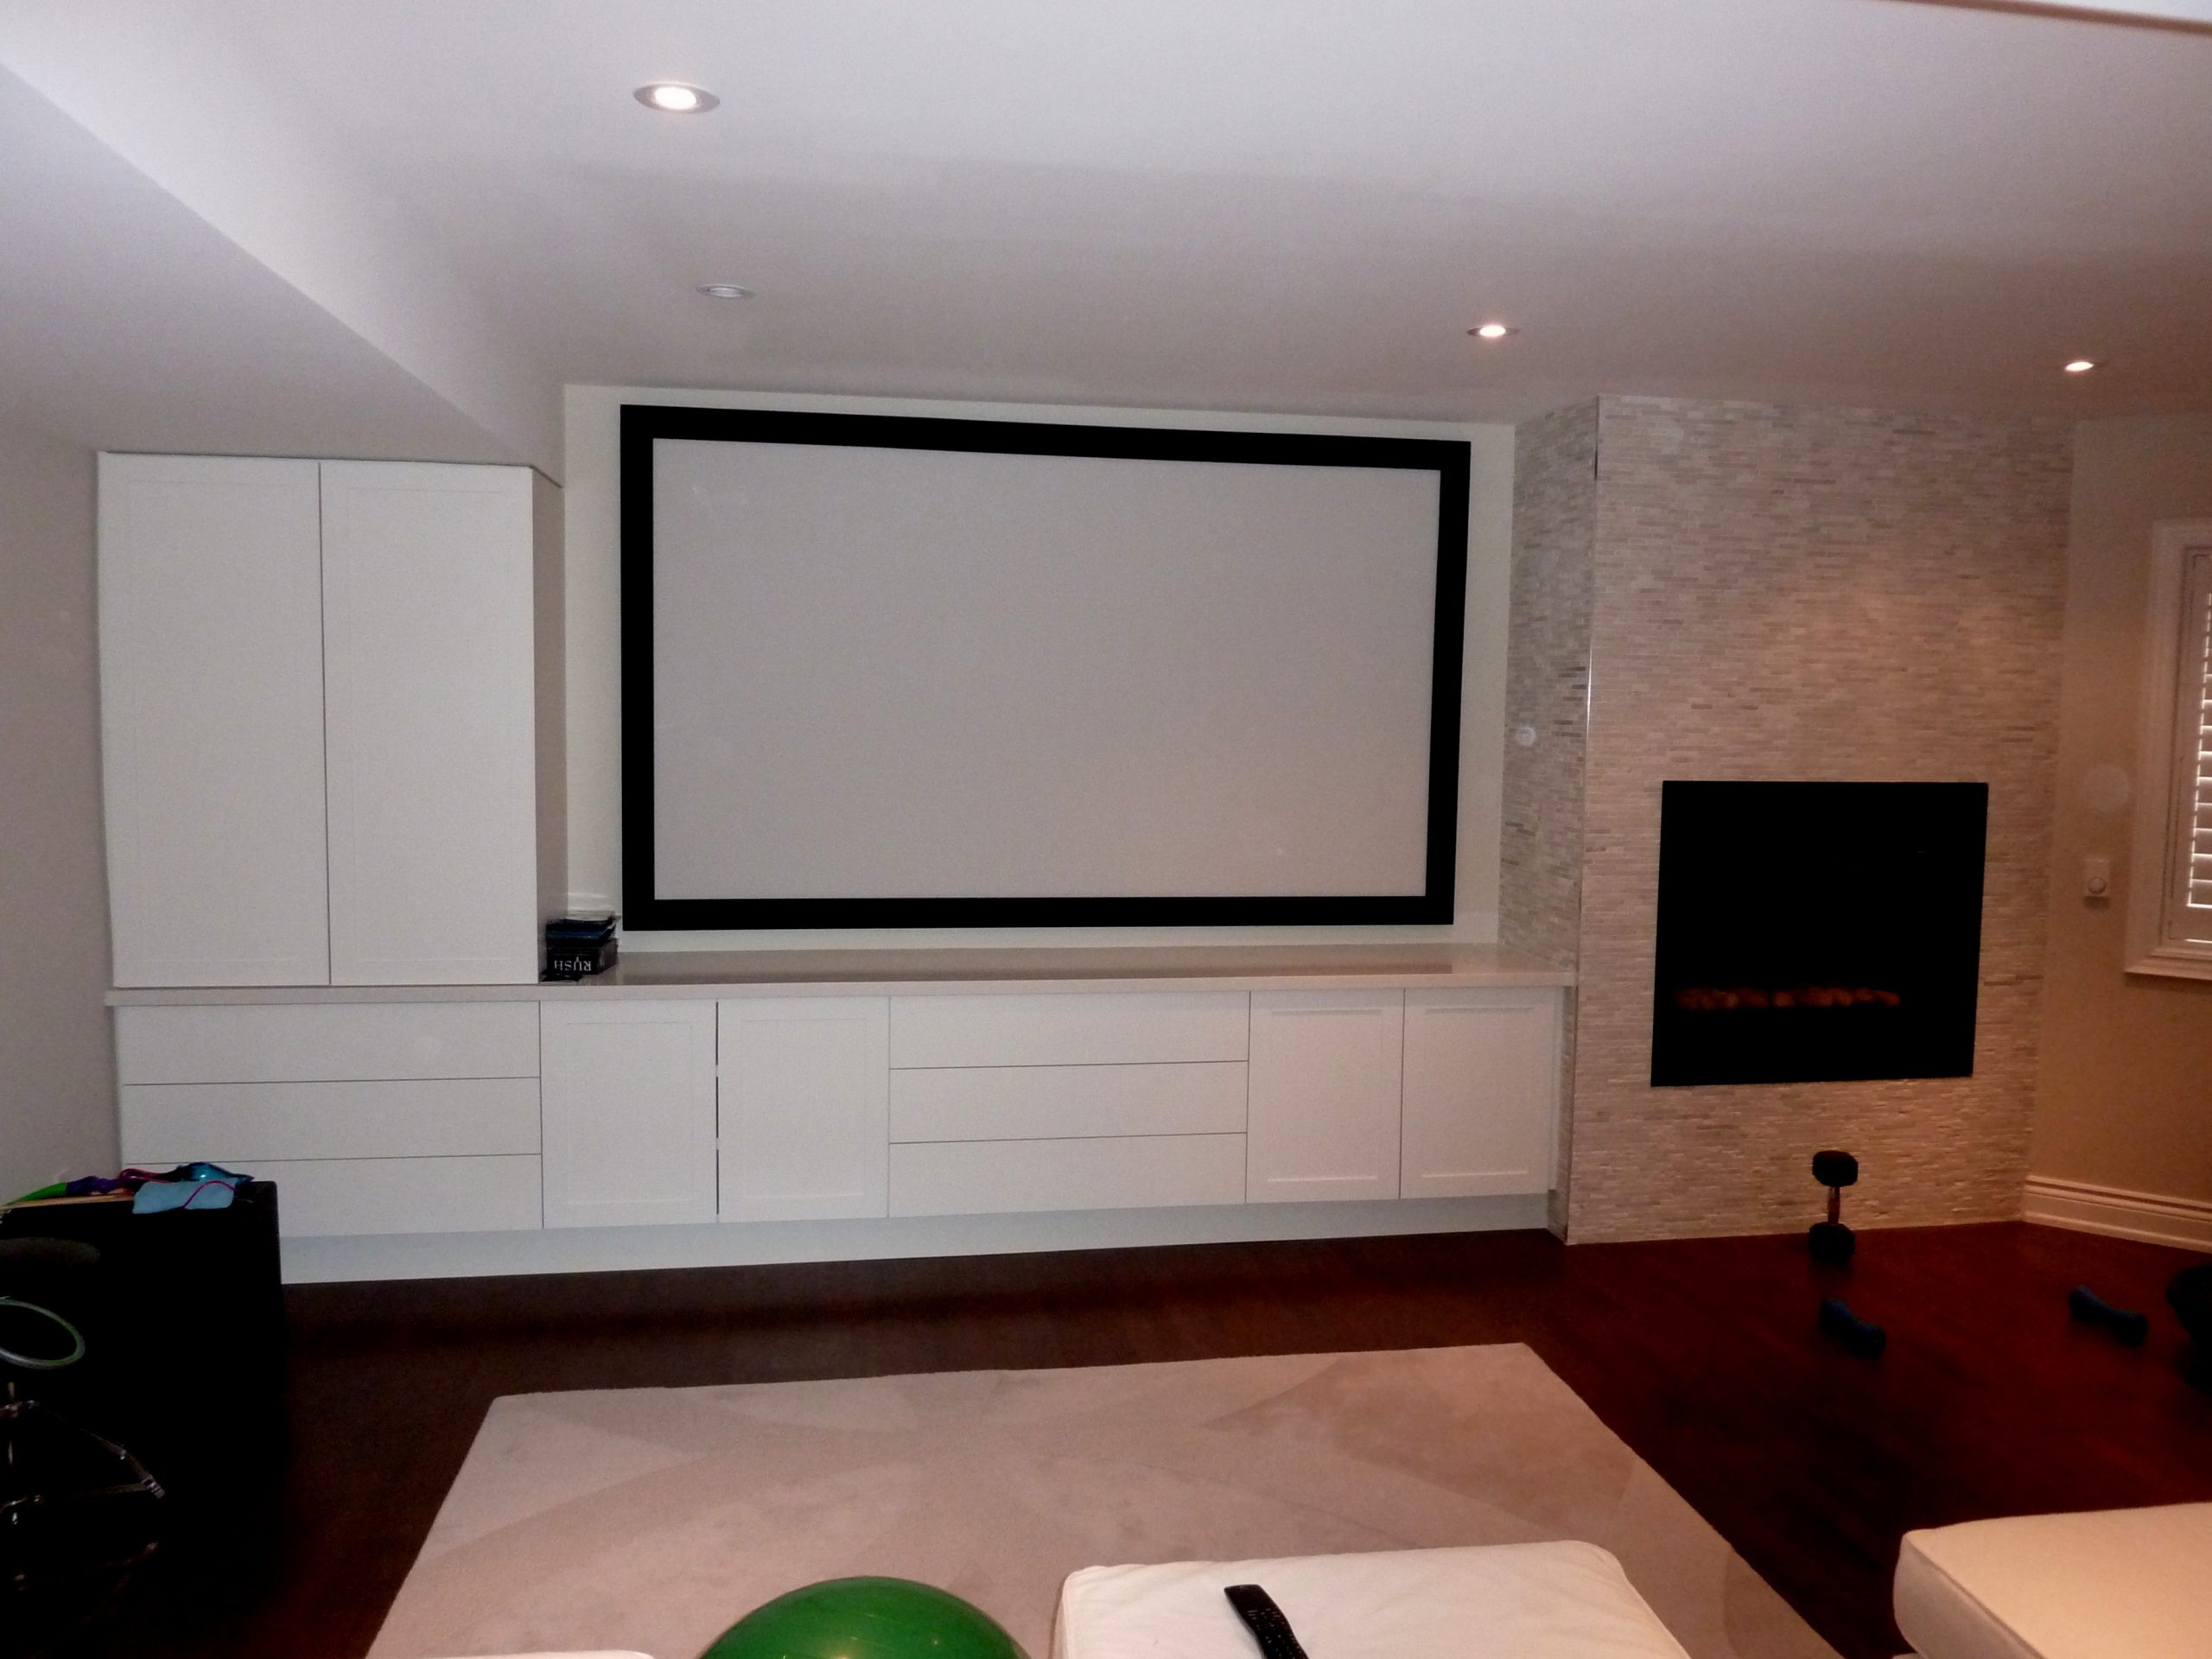 Perforated Projection Screen with Speakers in Behind and Custom Cabinets with Hidden Equipment